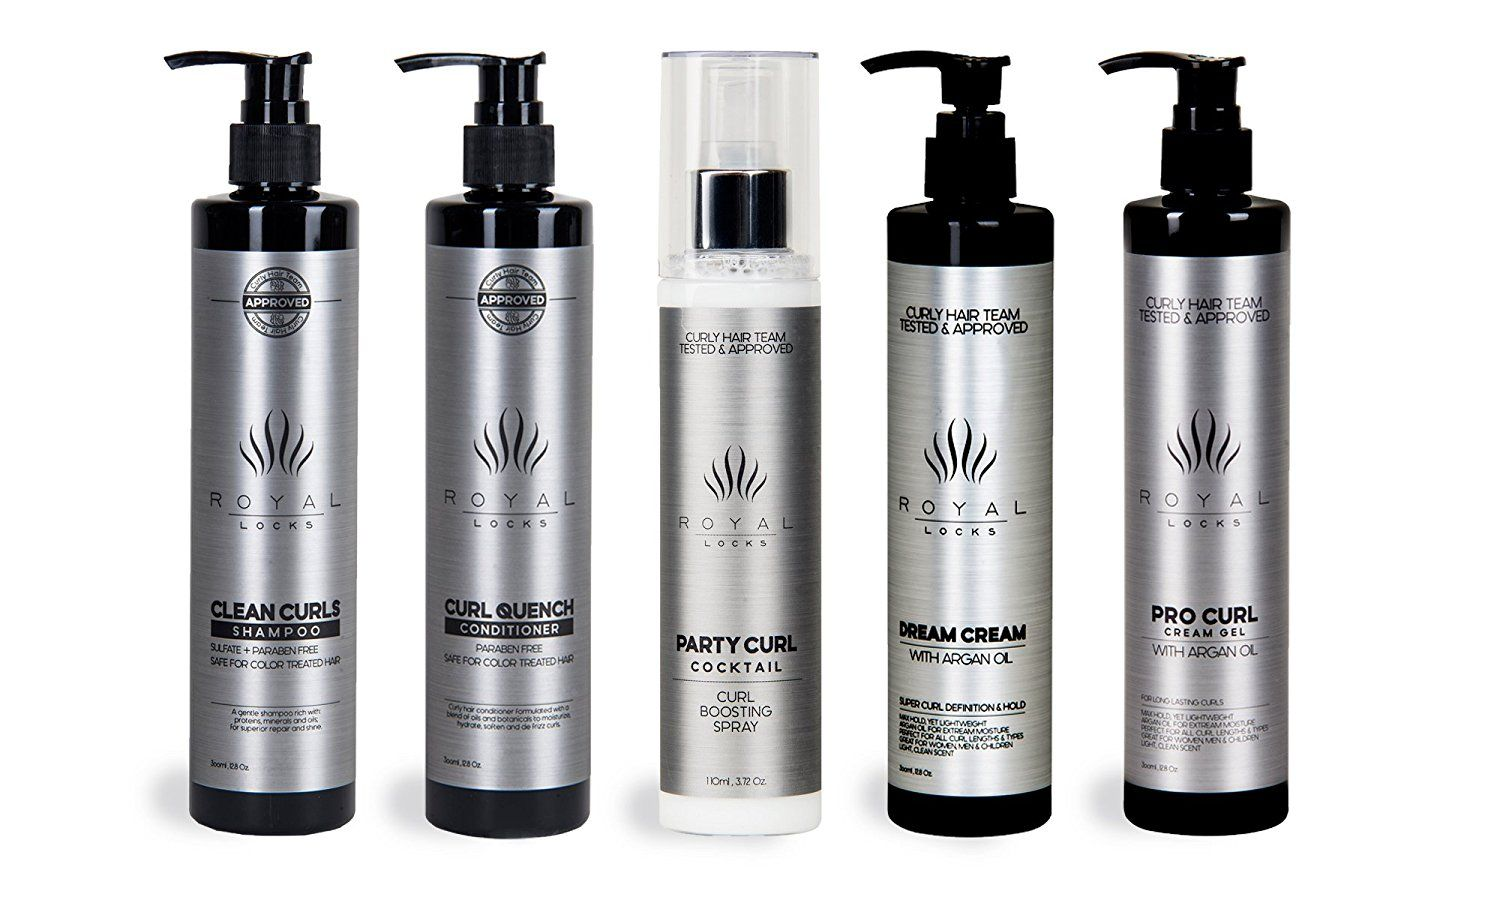 Complete Curly Hair Products Set by Royal Locks Two Curl Creams Curling Spray Sulfate and Paraben Free Shampoo and Conditioner * This is an Amazon Affiliate link. Want to know more, click on the image.